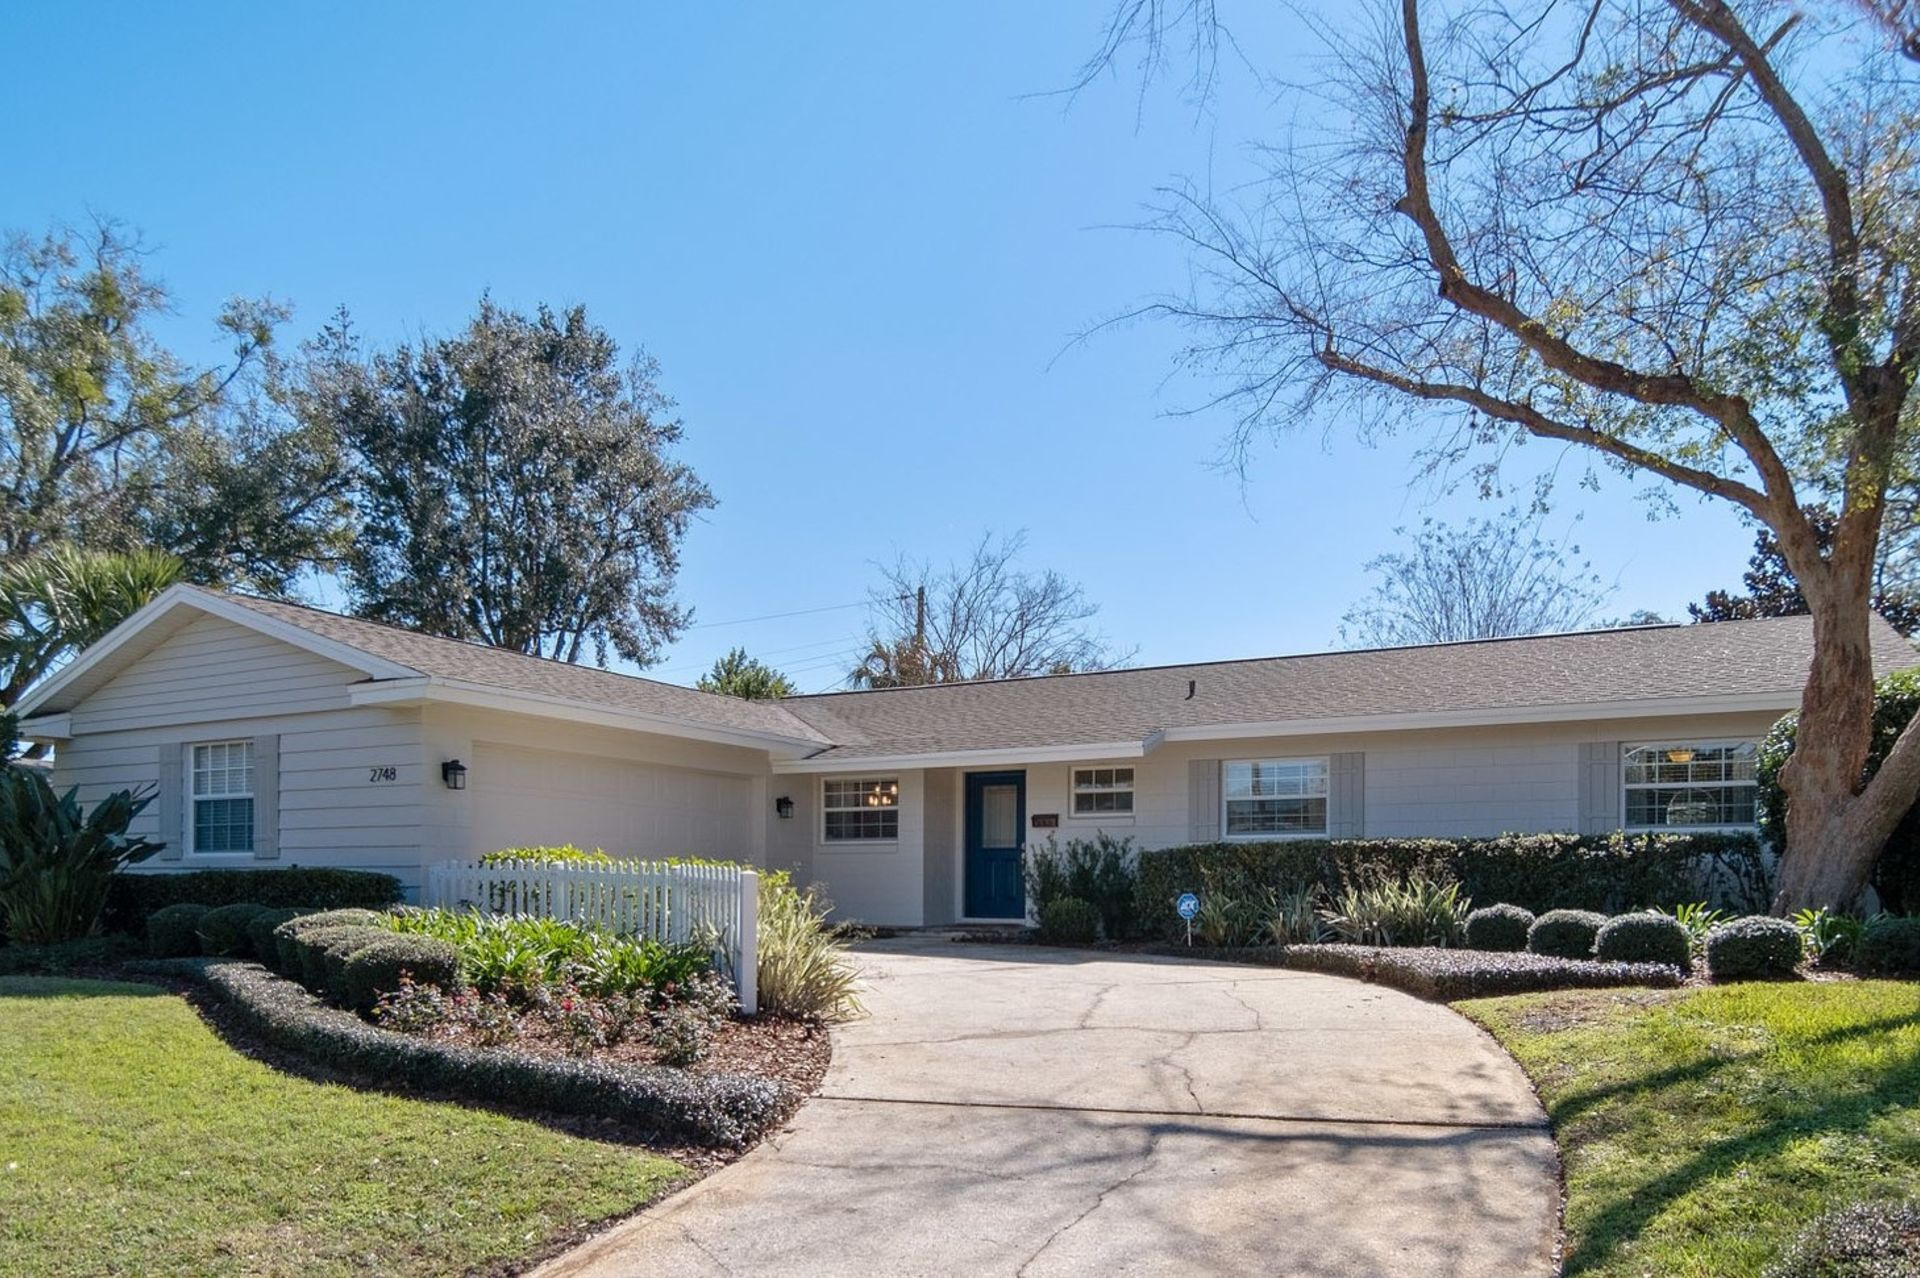 SOLD 2748 Cady Way, Winter Park, FL 32792